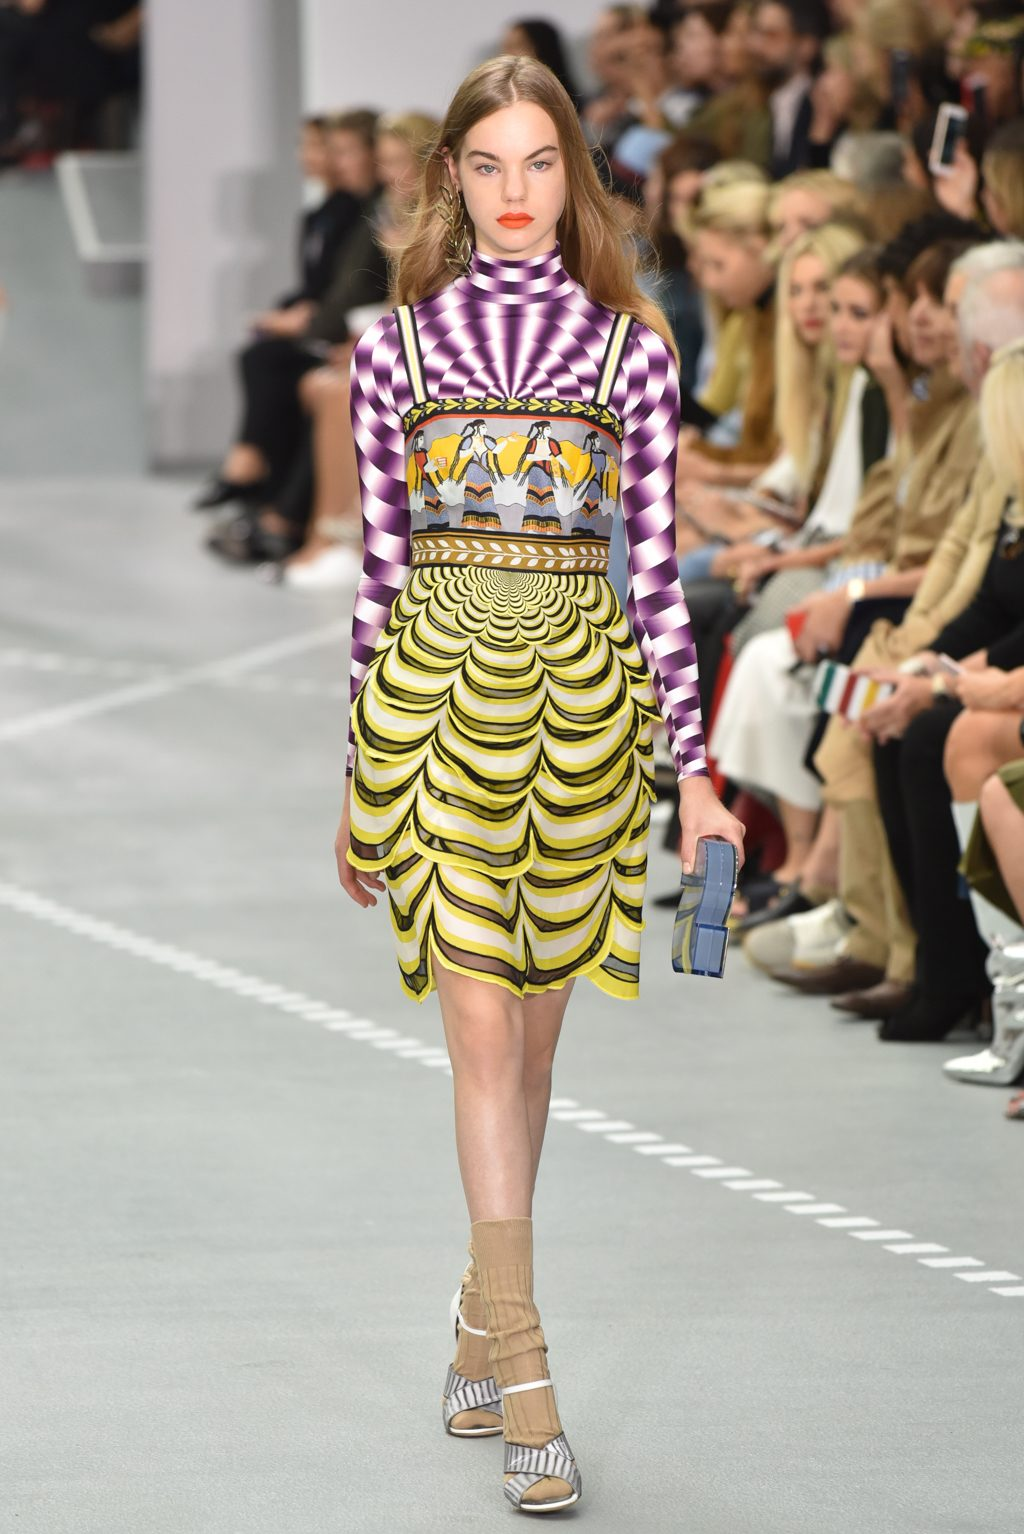 LFW-SS17-Mary-Katrantzou-Krisztian-Pinter-the-upcoming-17-1024x1534